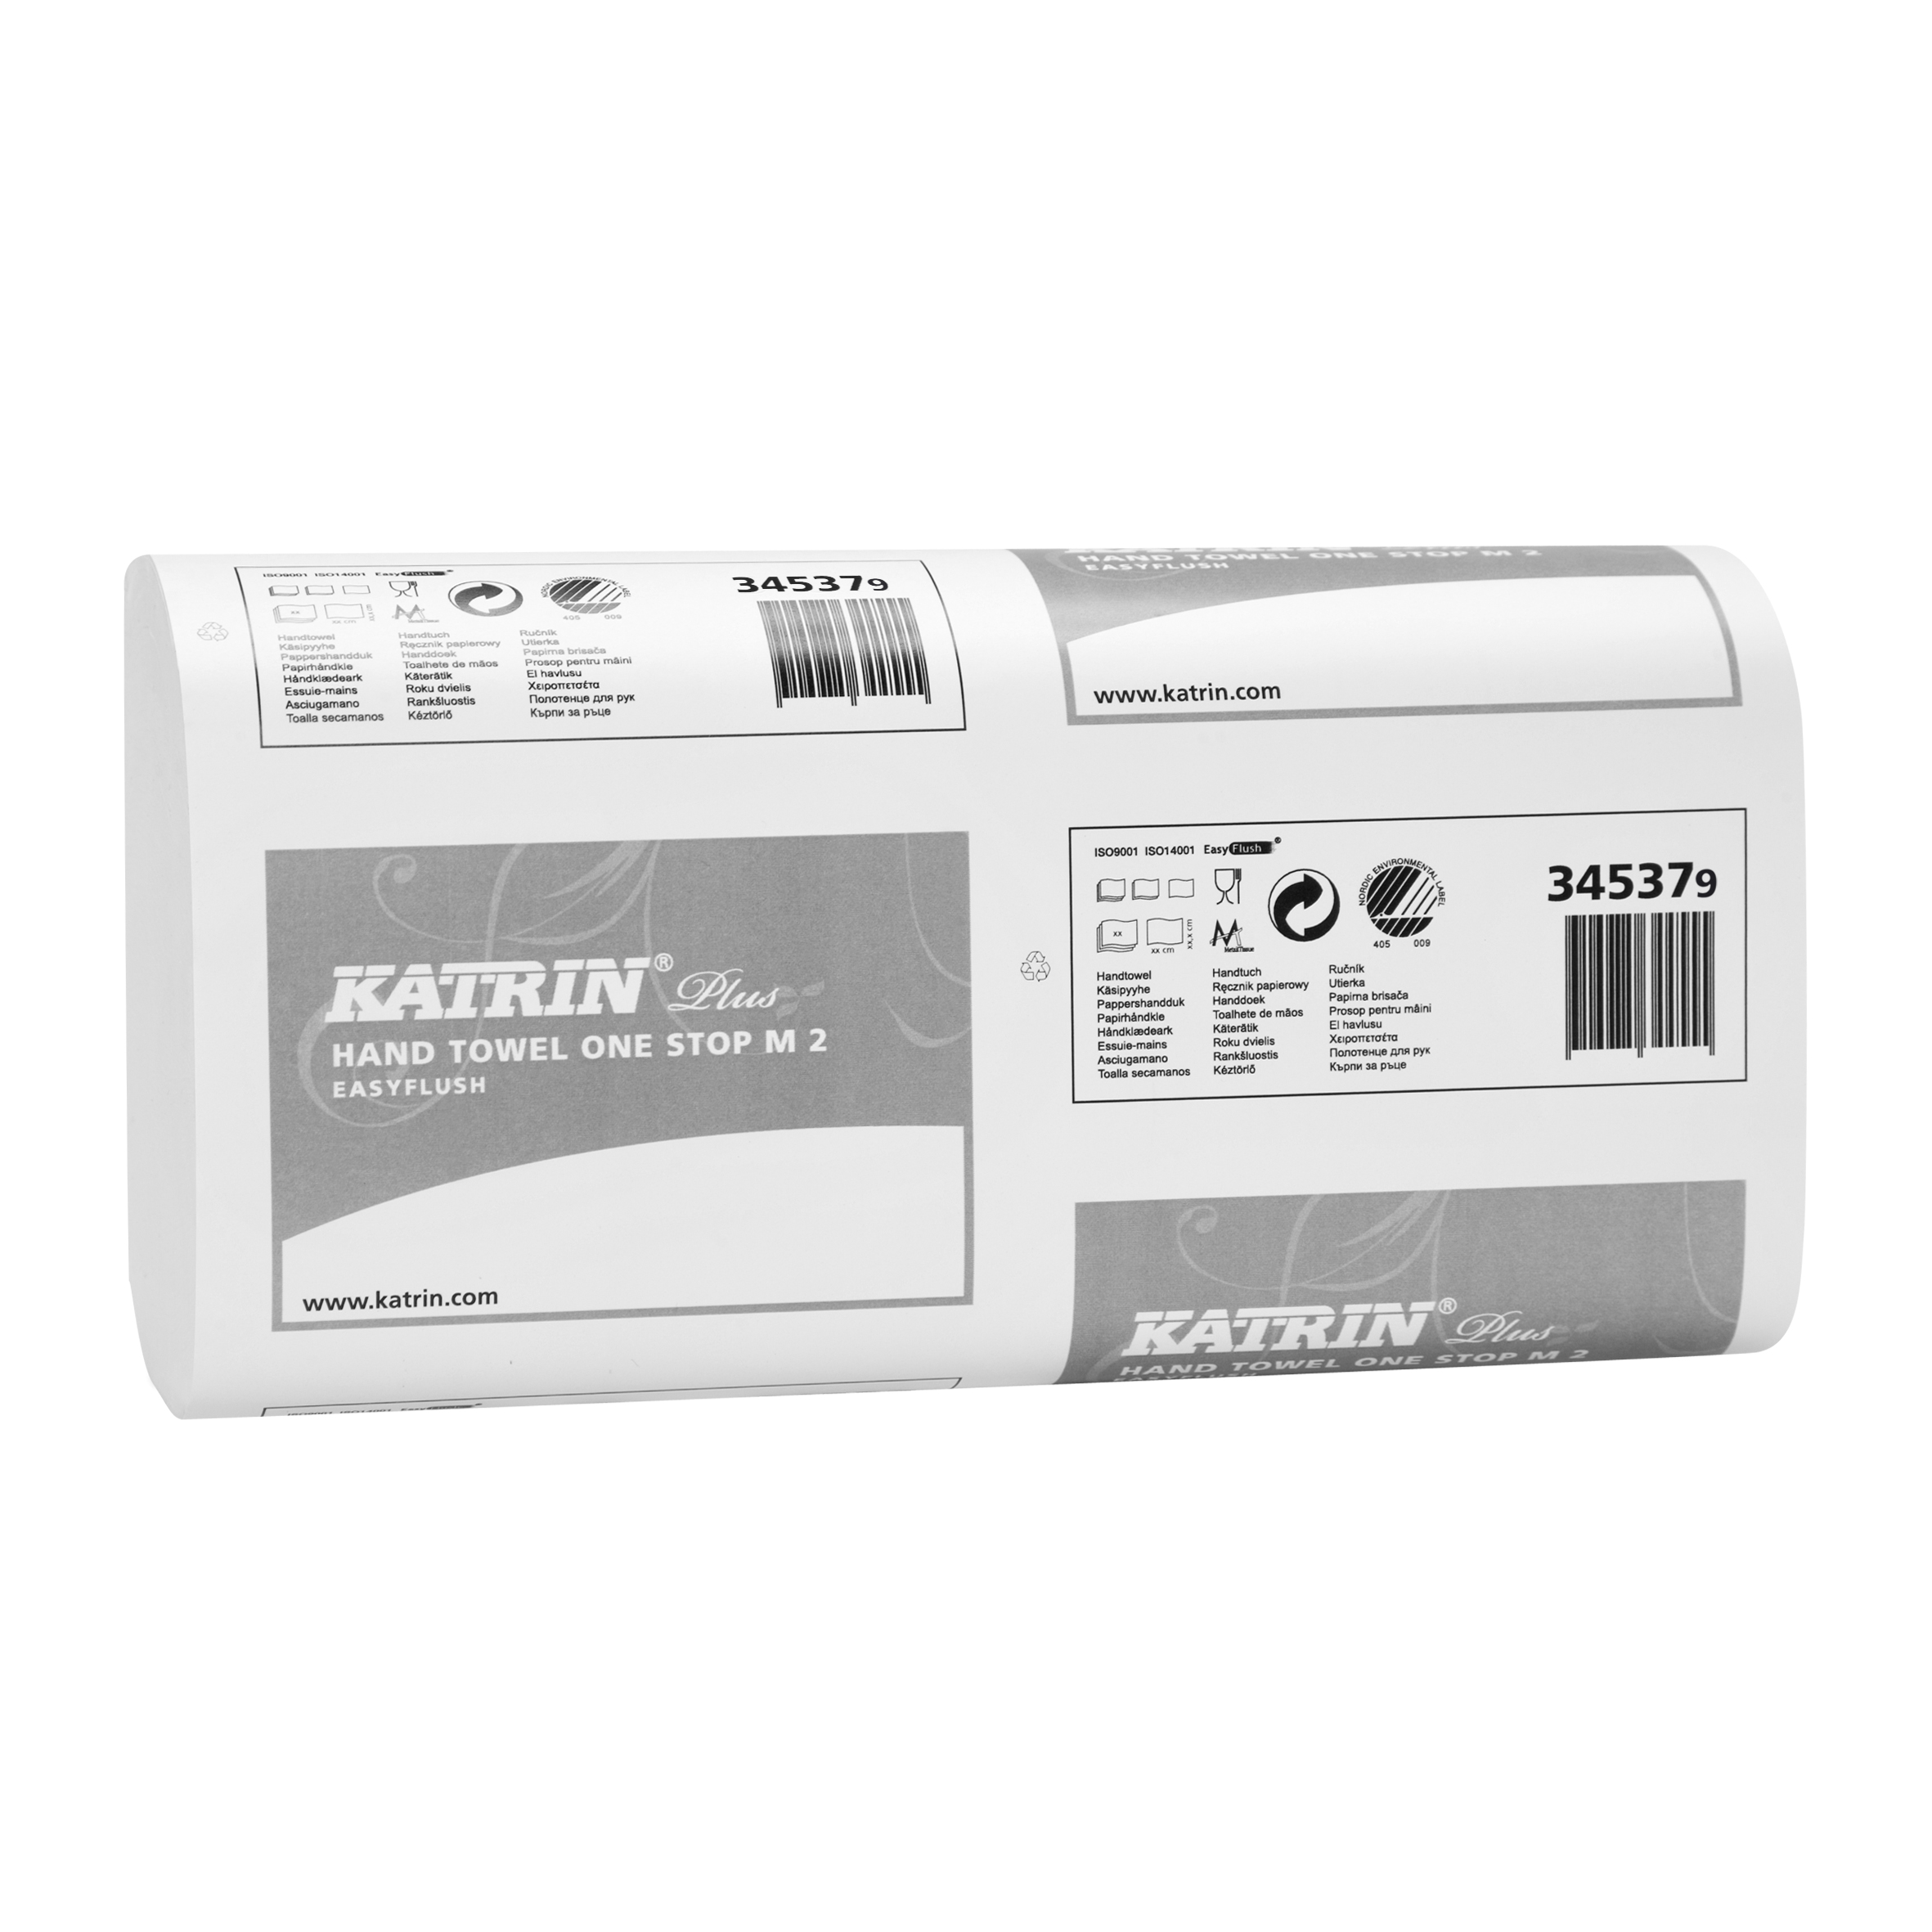 Katrin-Plus-One-stop-Easyflush-2ply---White-20.6x25cm-